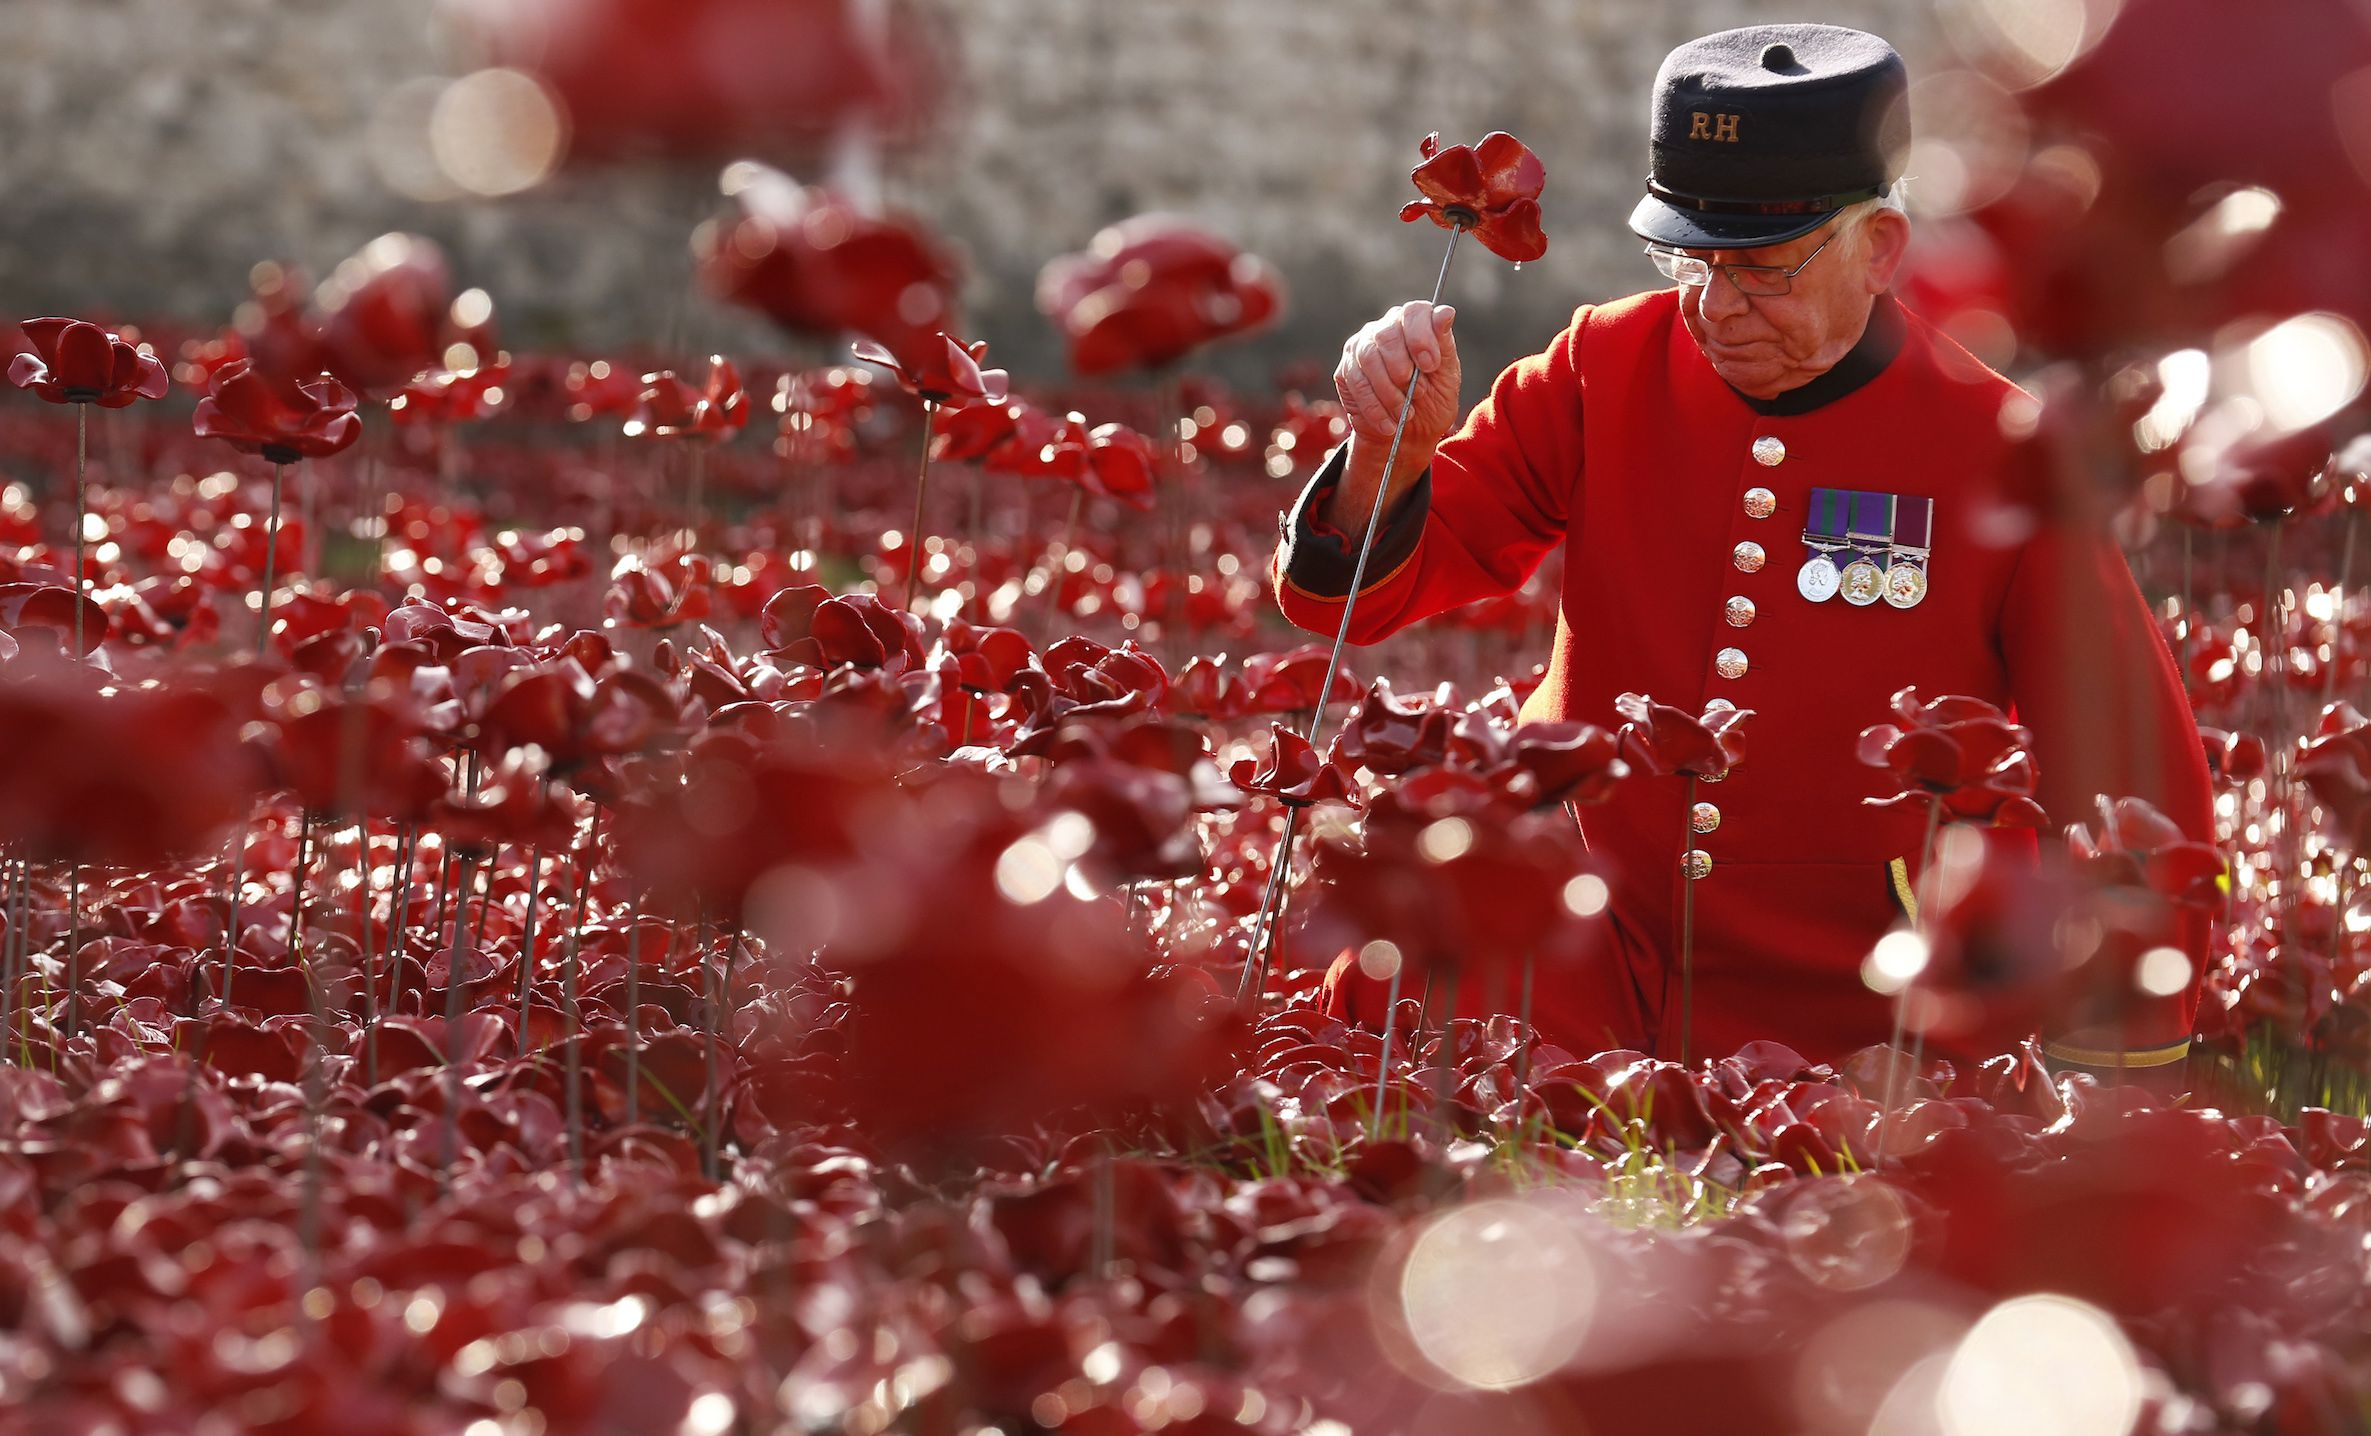 "Chelsea Pensioner Albert Willis plants a ceramic poppy amongst other poppies that form part of the art installation called ""Blood Swept Lands and Seas of Red"" at the Tower of London October 9, 2014. The evolving art installation, which will be completed on November 11, will create a commemoration for the centenary of World War One. REUTERS/Luke MacGregor (BRITAIN - Tags: MILITARY SOCIETY TRAVEL ANNIVERSARY TPX IMAGES OF THE DAY) - RTR49IS2"